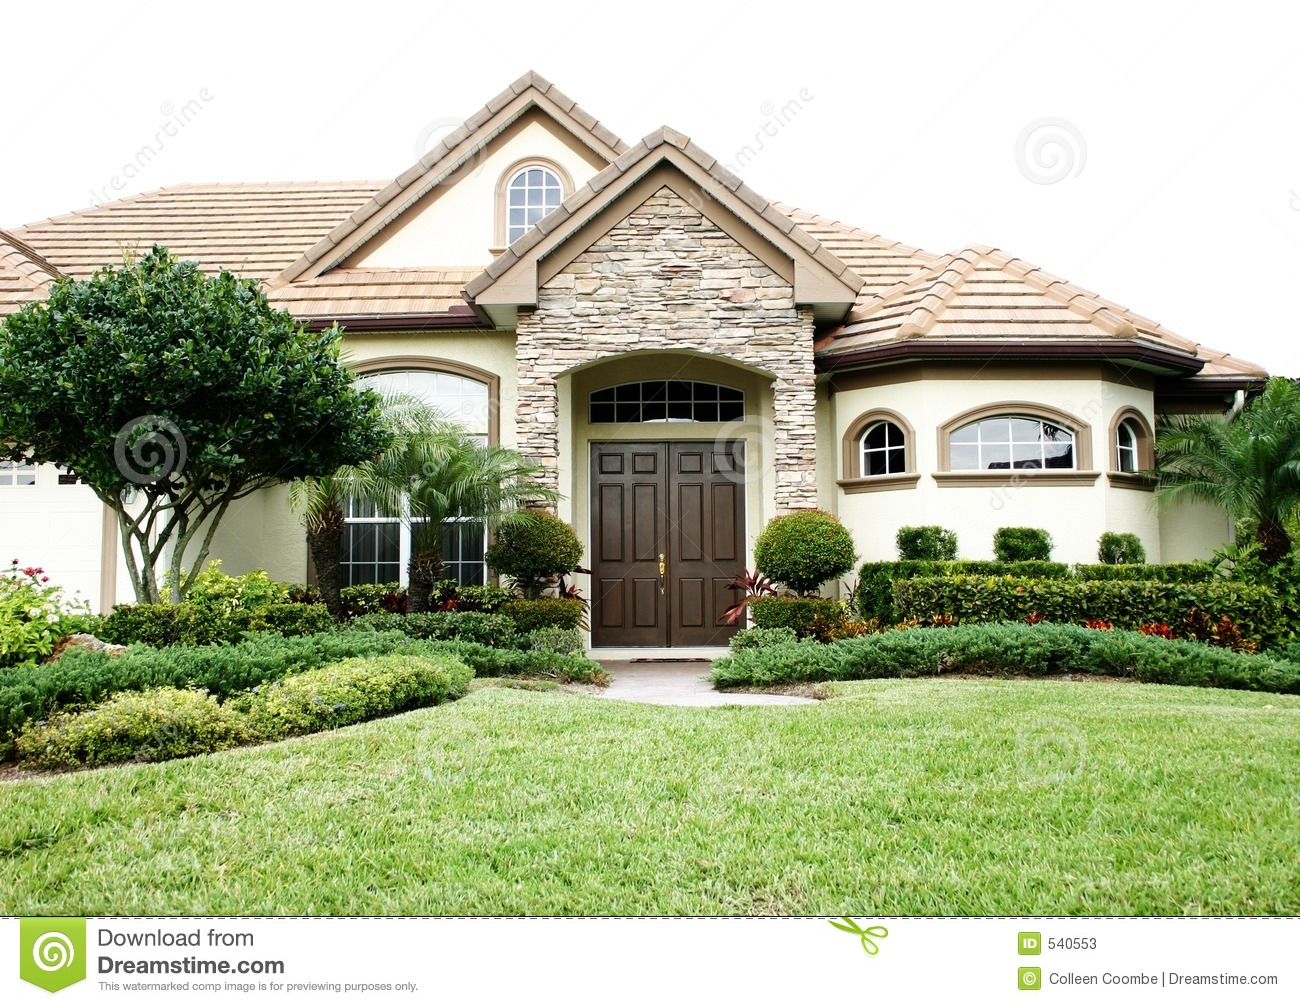 English style home stock photos image 540553 for Home and style